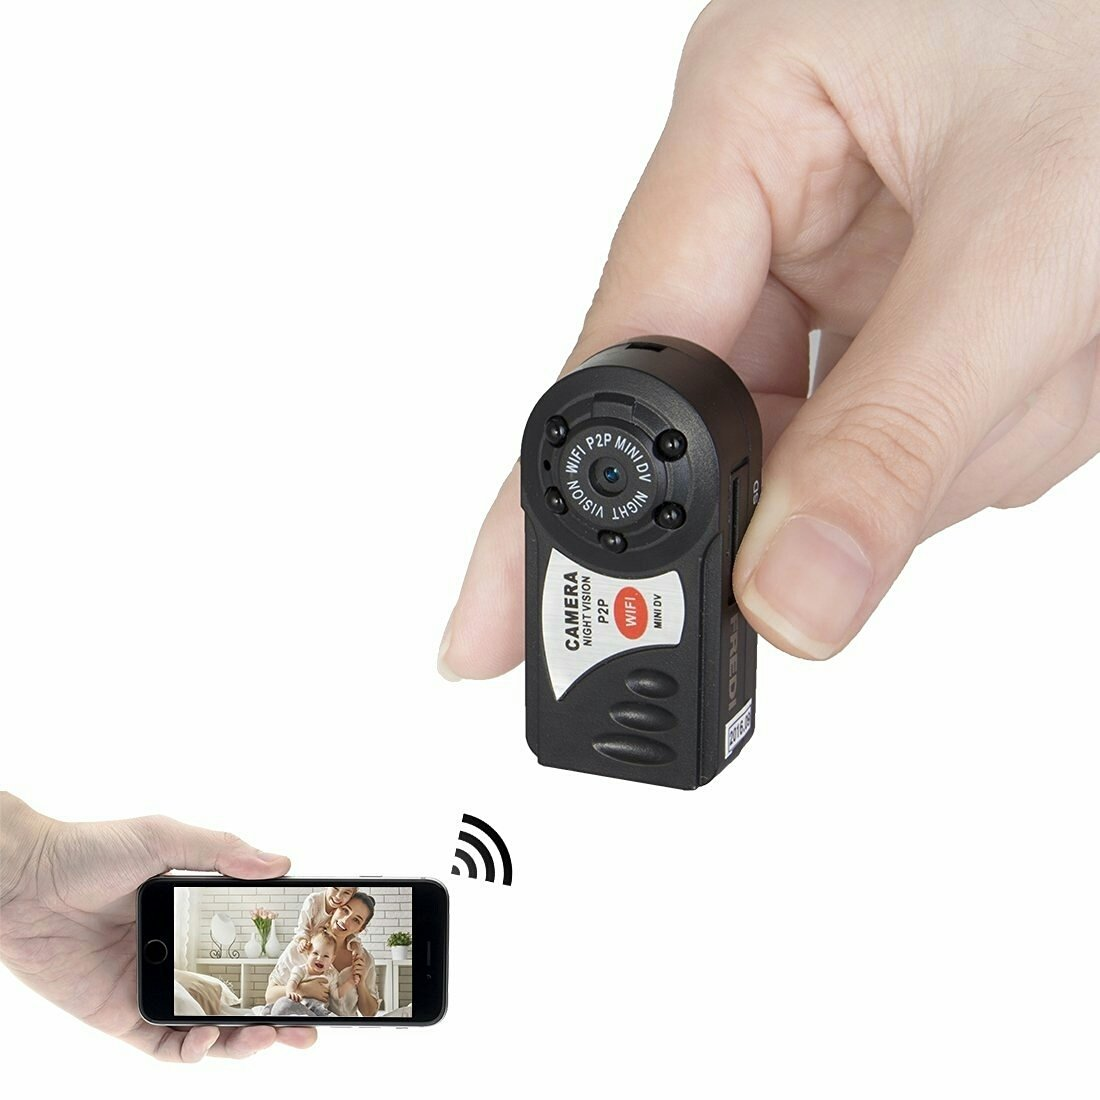 Mini Camera (PAS IP CAMERA) Rechargeable Portatif P2P WiFi Indoor/Outdoor HD DV Camera Espion Video Photo Video Recorder Securite - iPhone/Android Phone/ iPad /PC - VENDU A DES CLIENTS AVISES